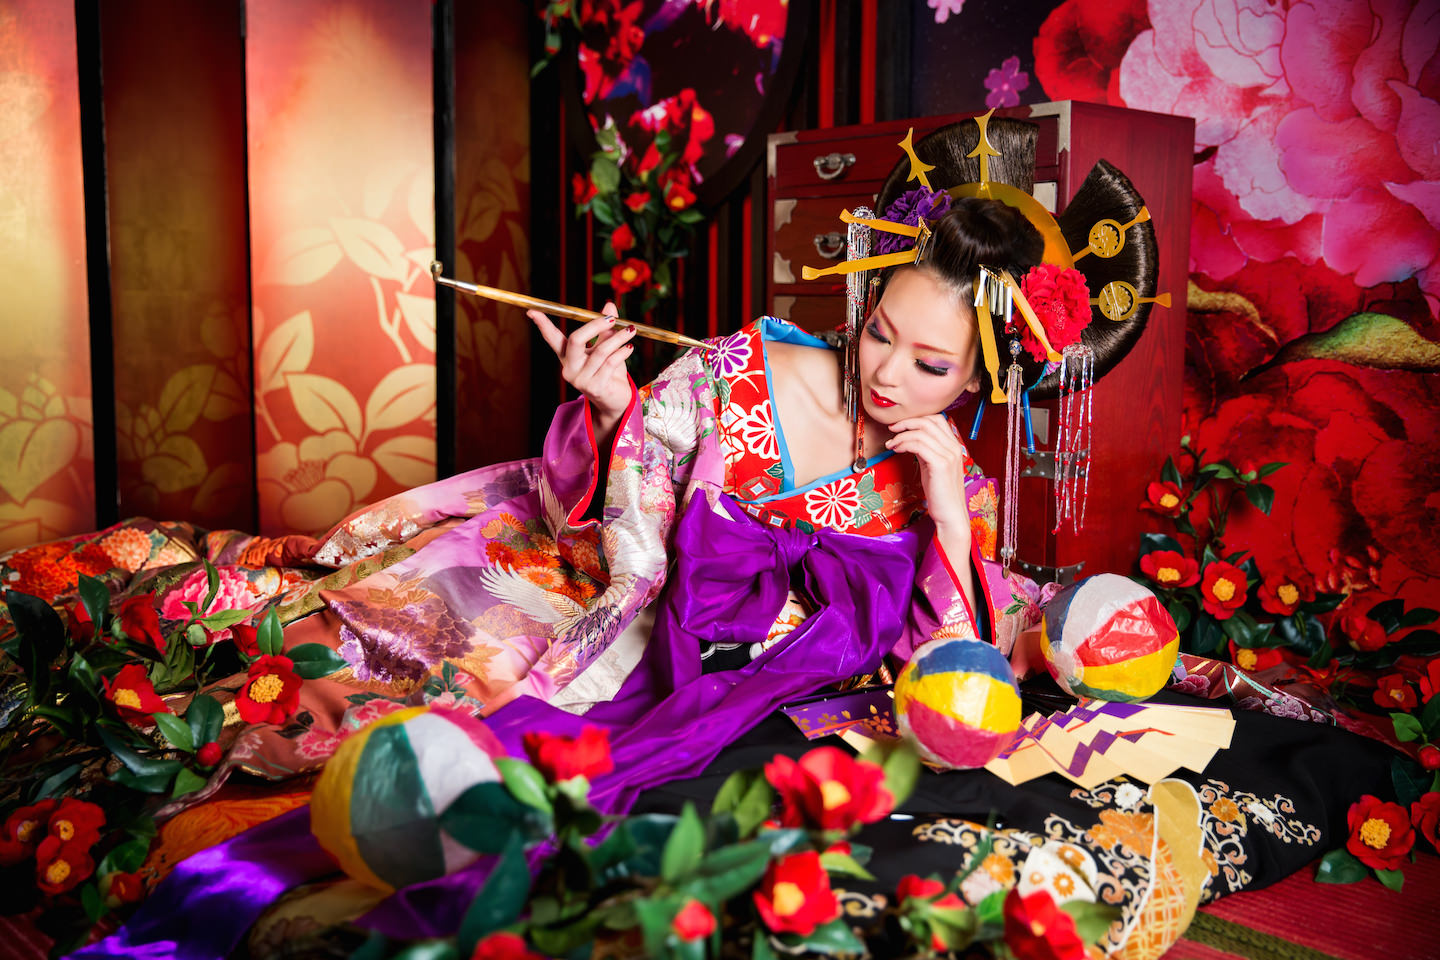 A woman dressed up as oiran for make-over photo